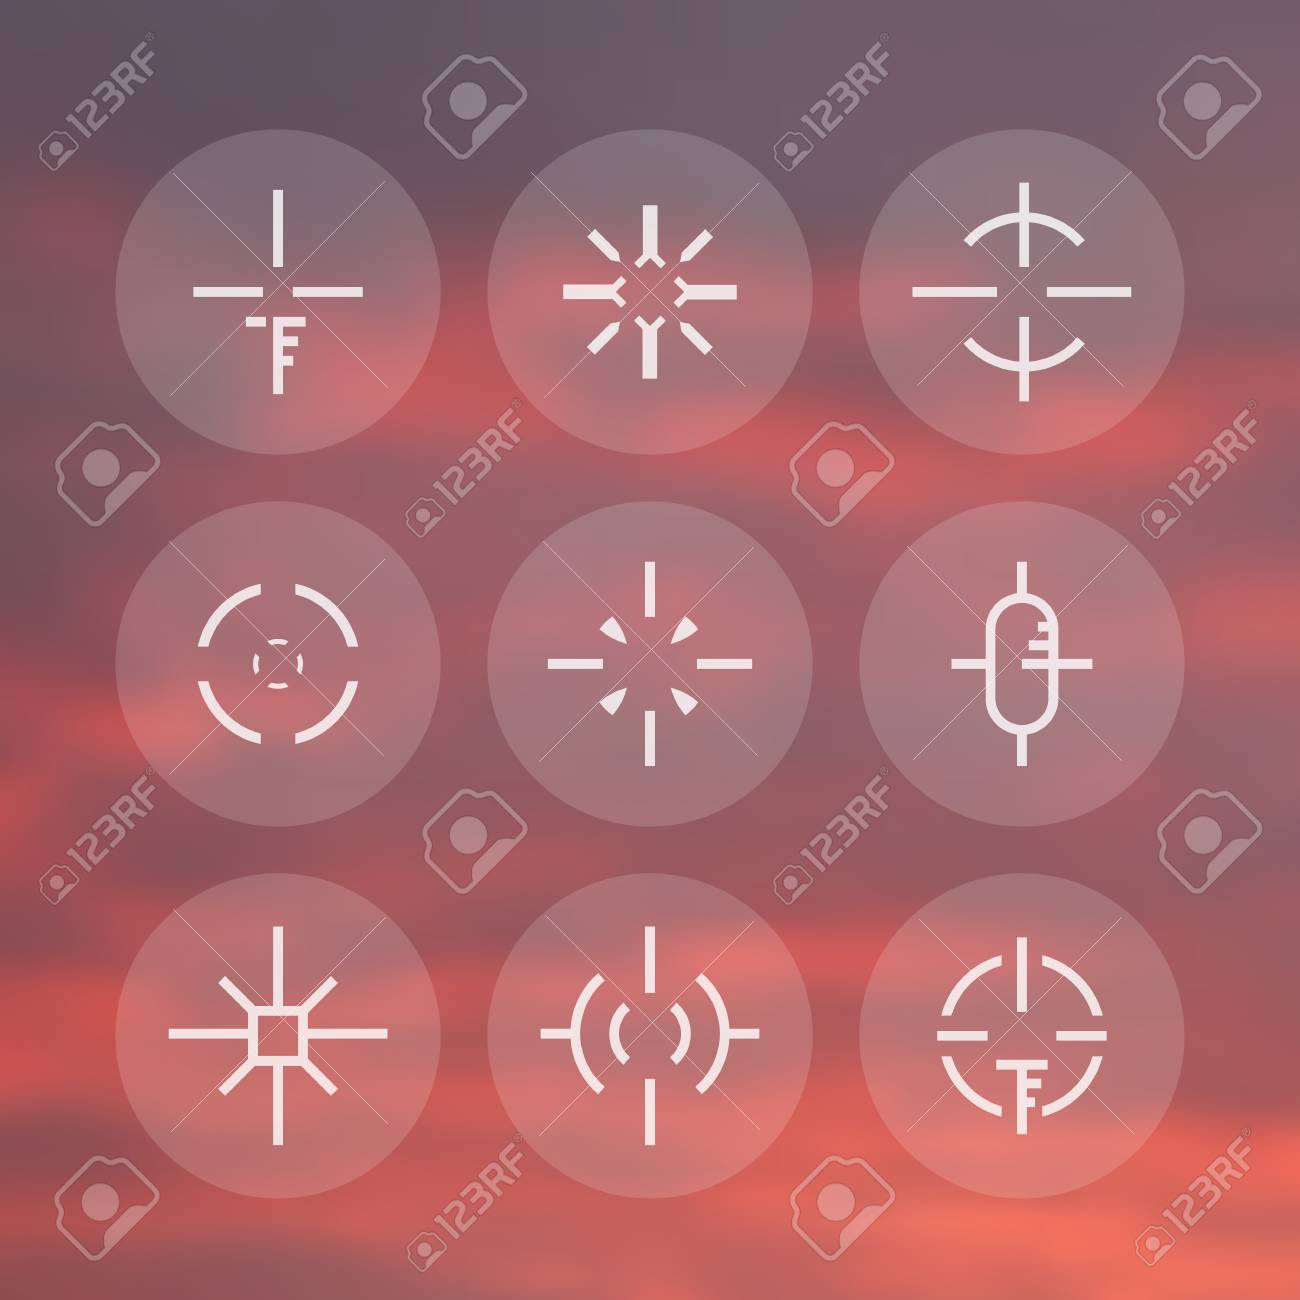 Crosshairs Pack Elements For Game Design Stock Vector 65604527